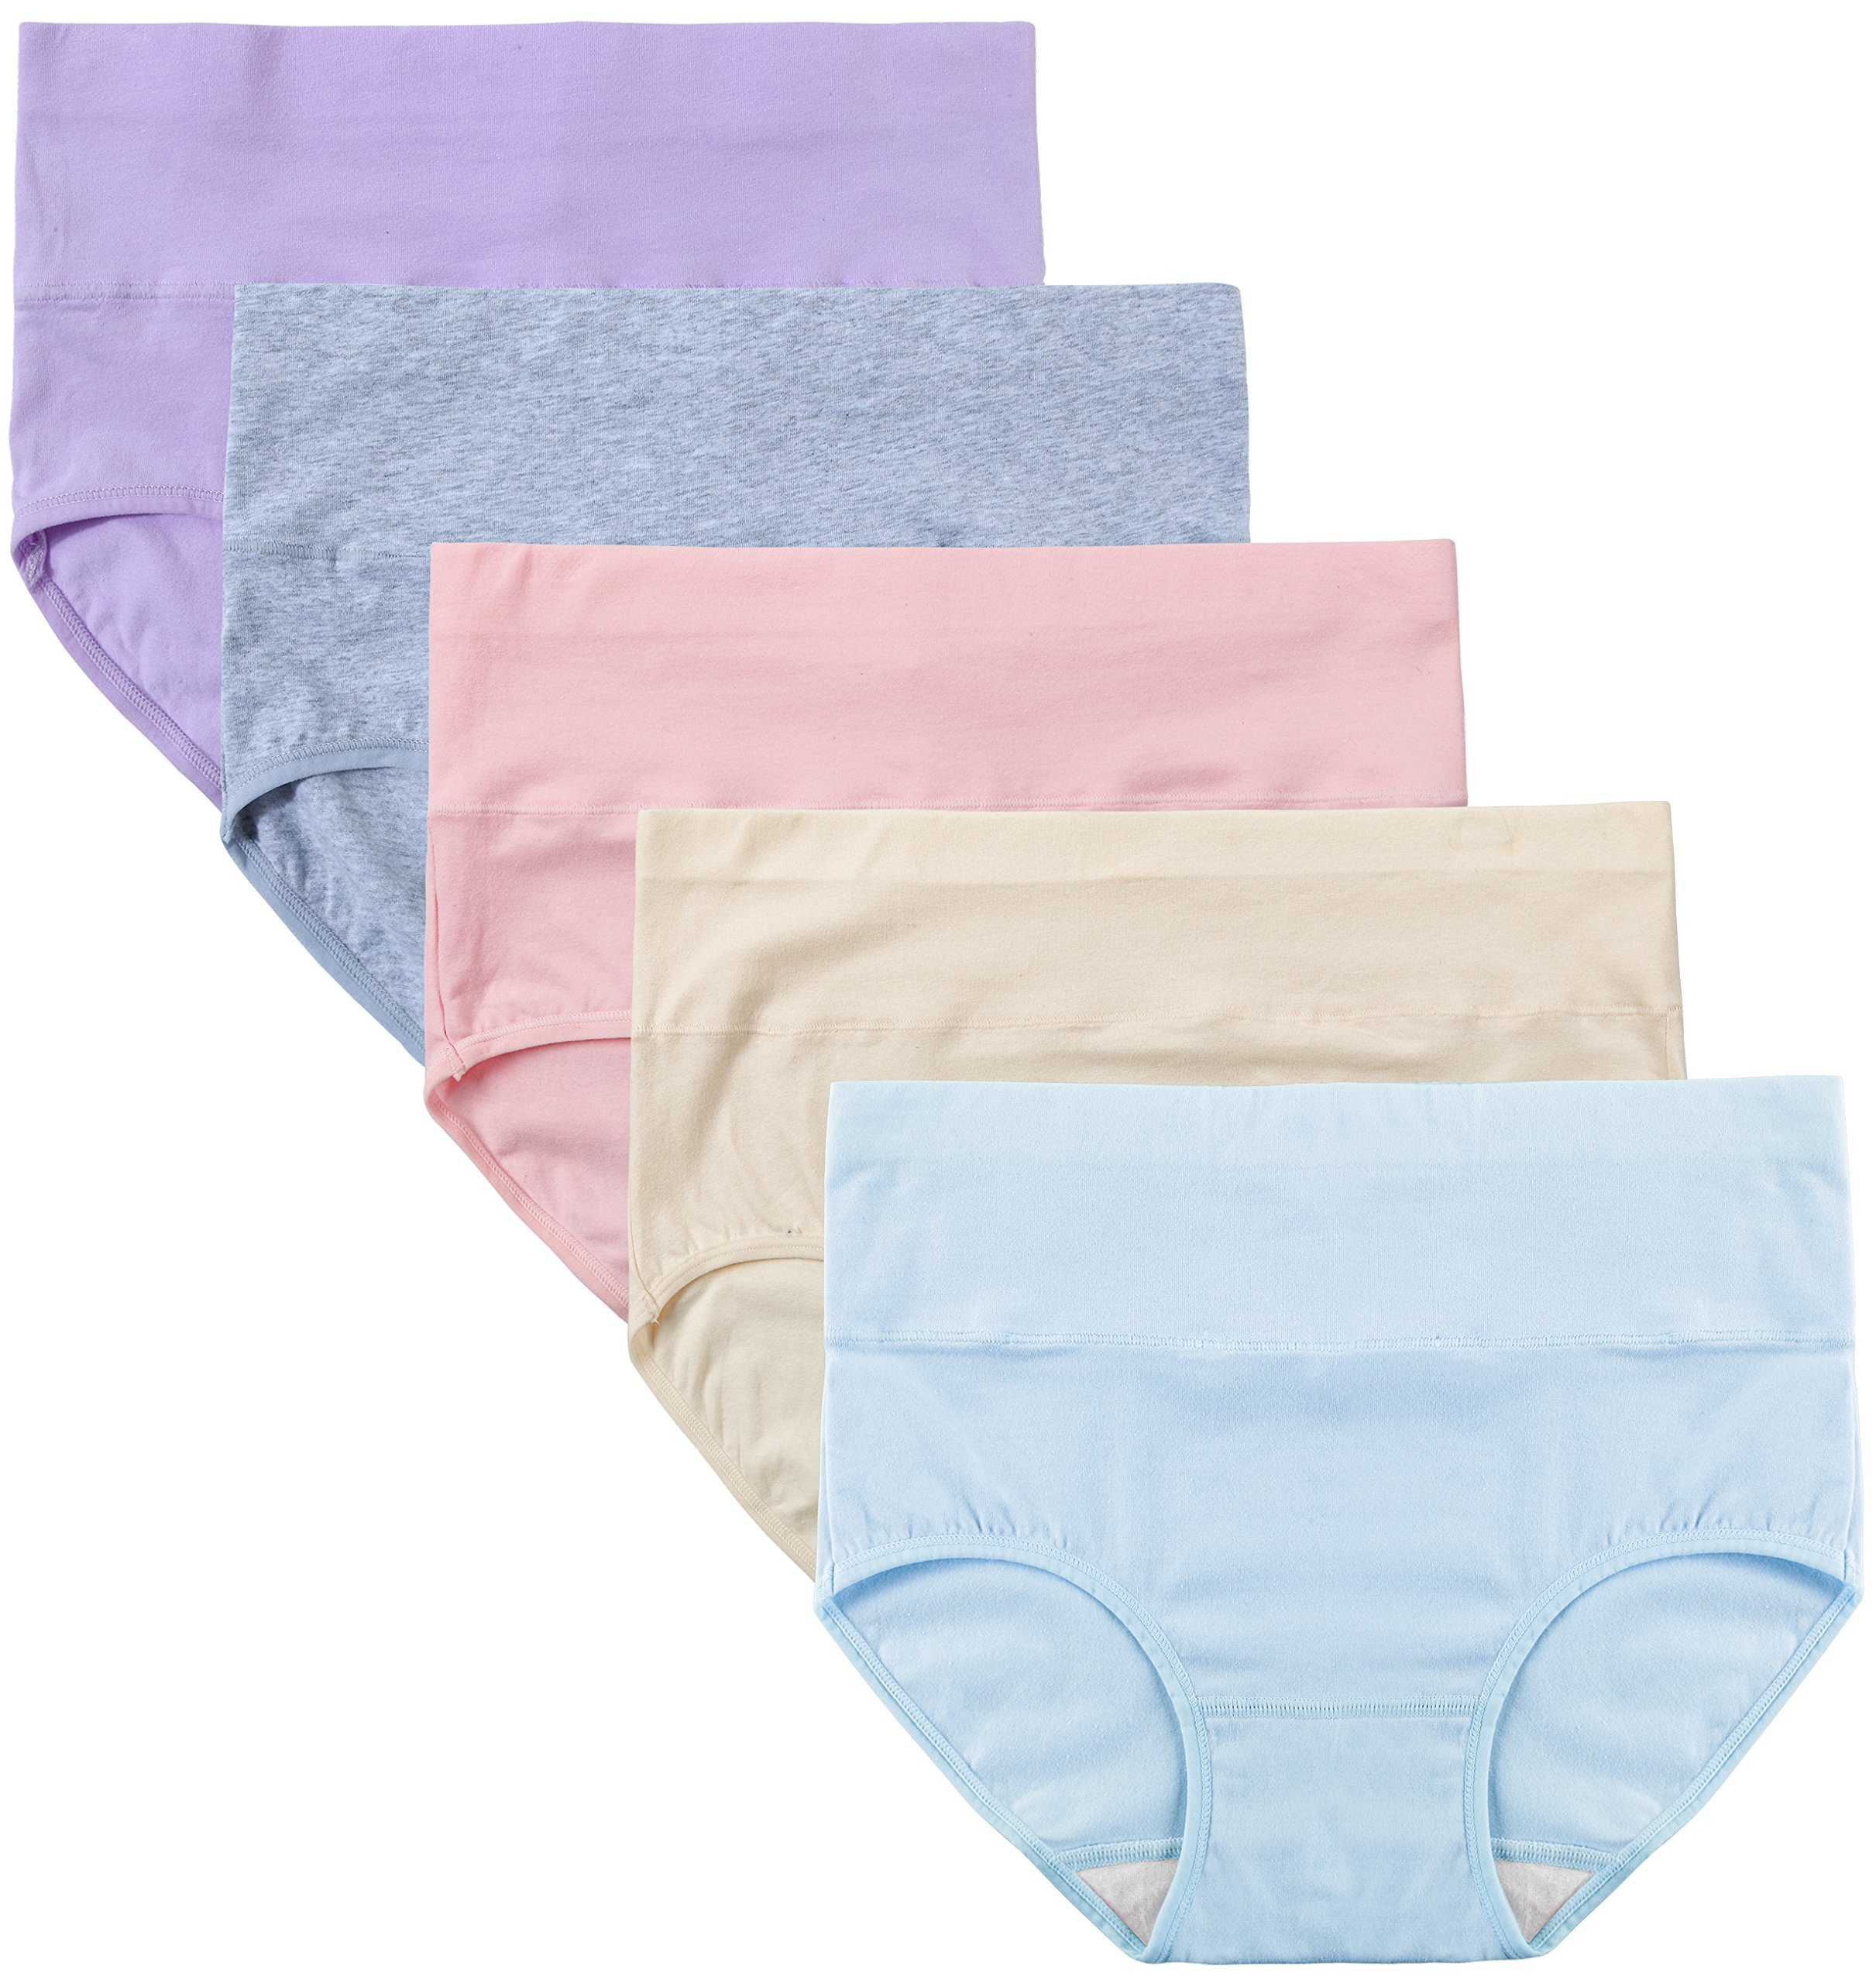 Innersy Women's 5 Pack High Waist Tummy Control Wavy Solid Color Cotton Briefs Panties(Fantasy Girls Series) (2XL, Style 1) by Innersy (Image #1)